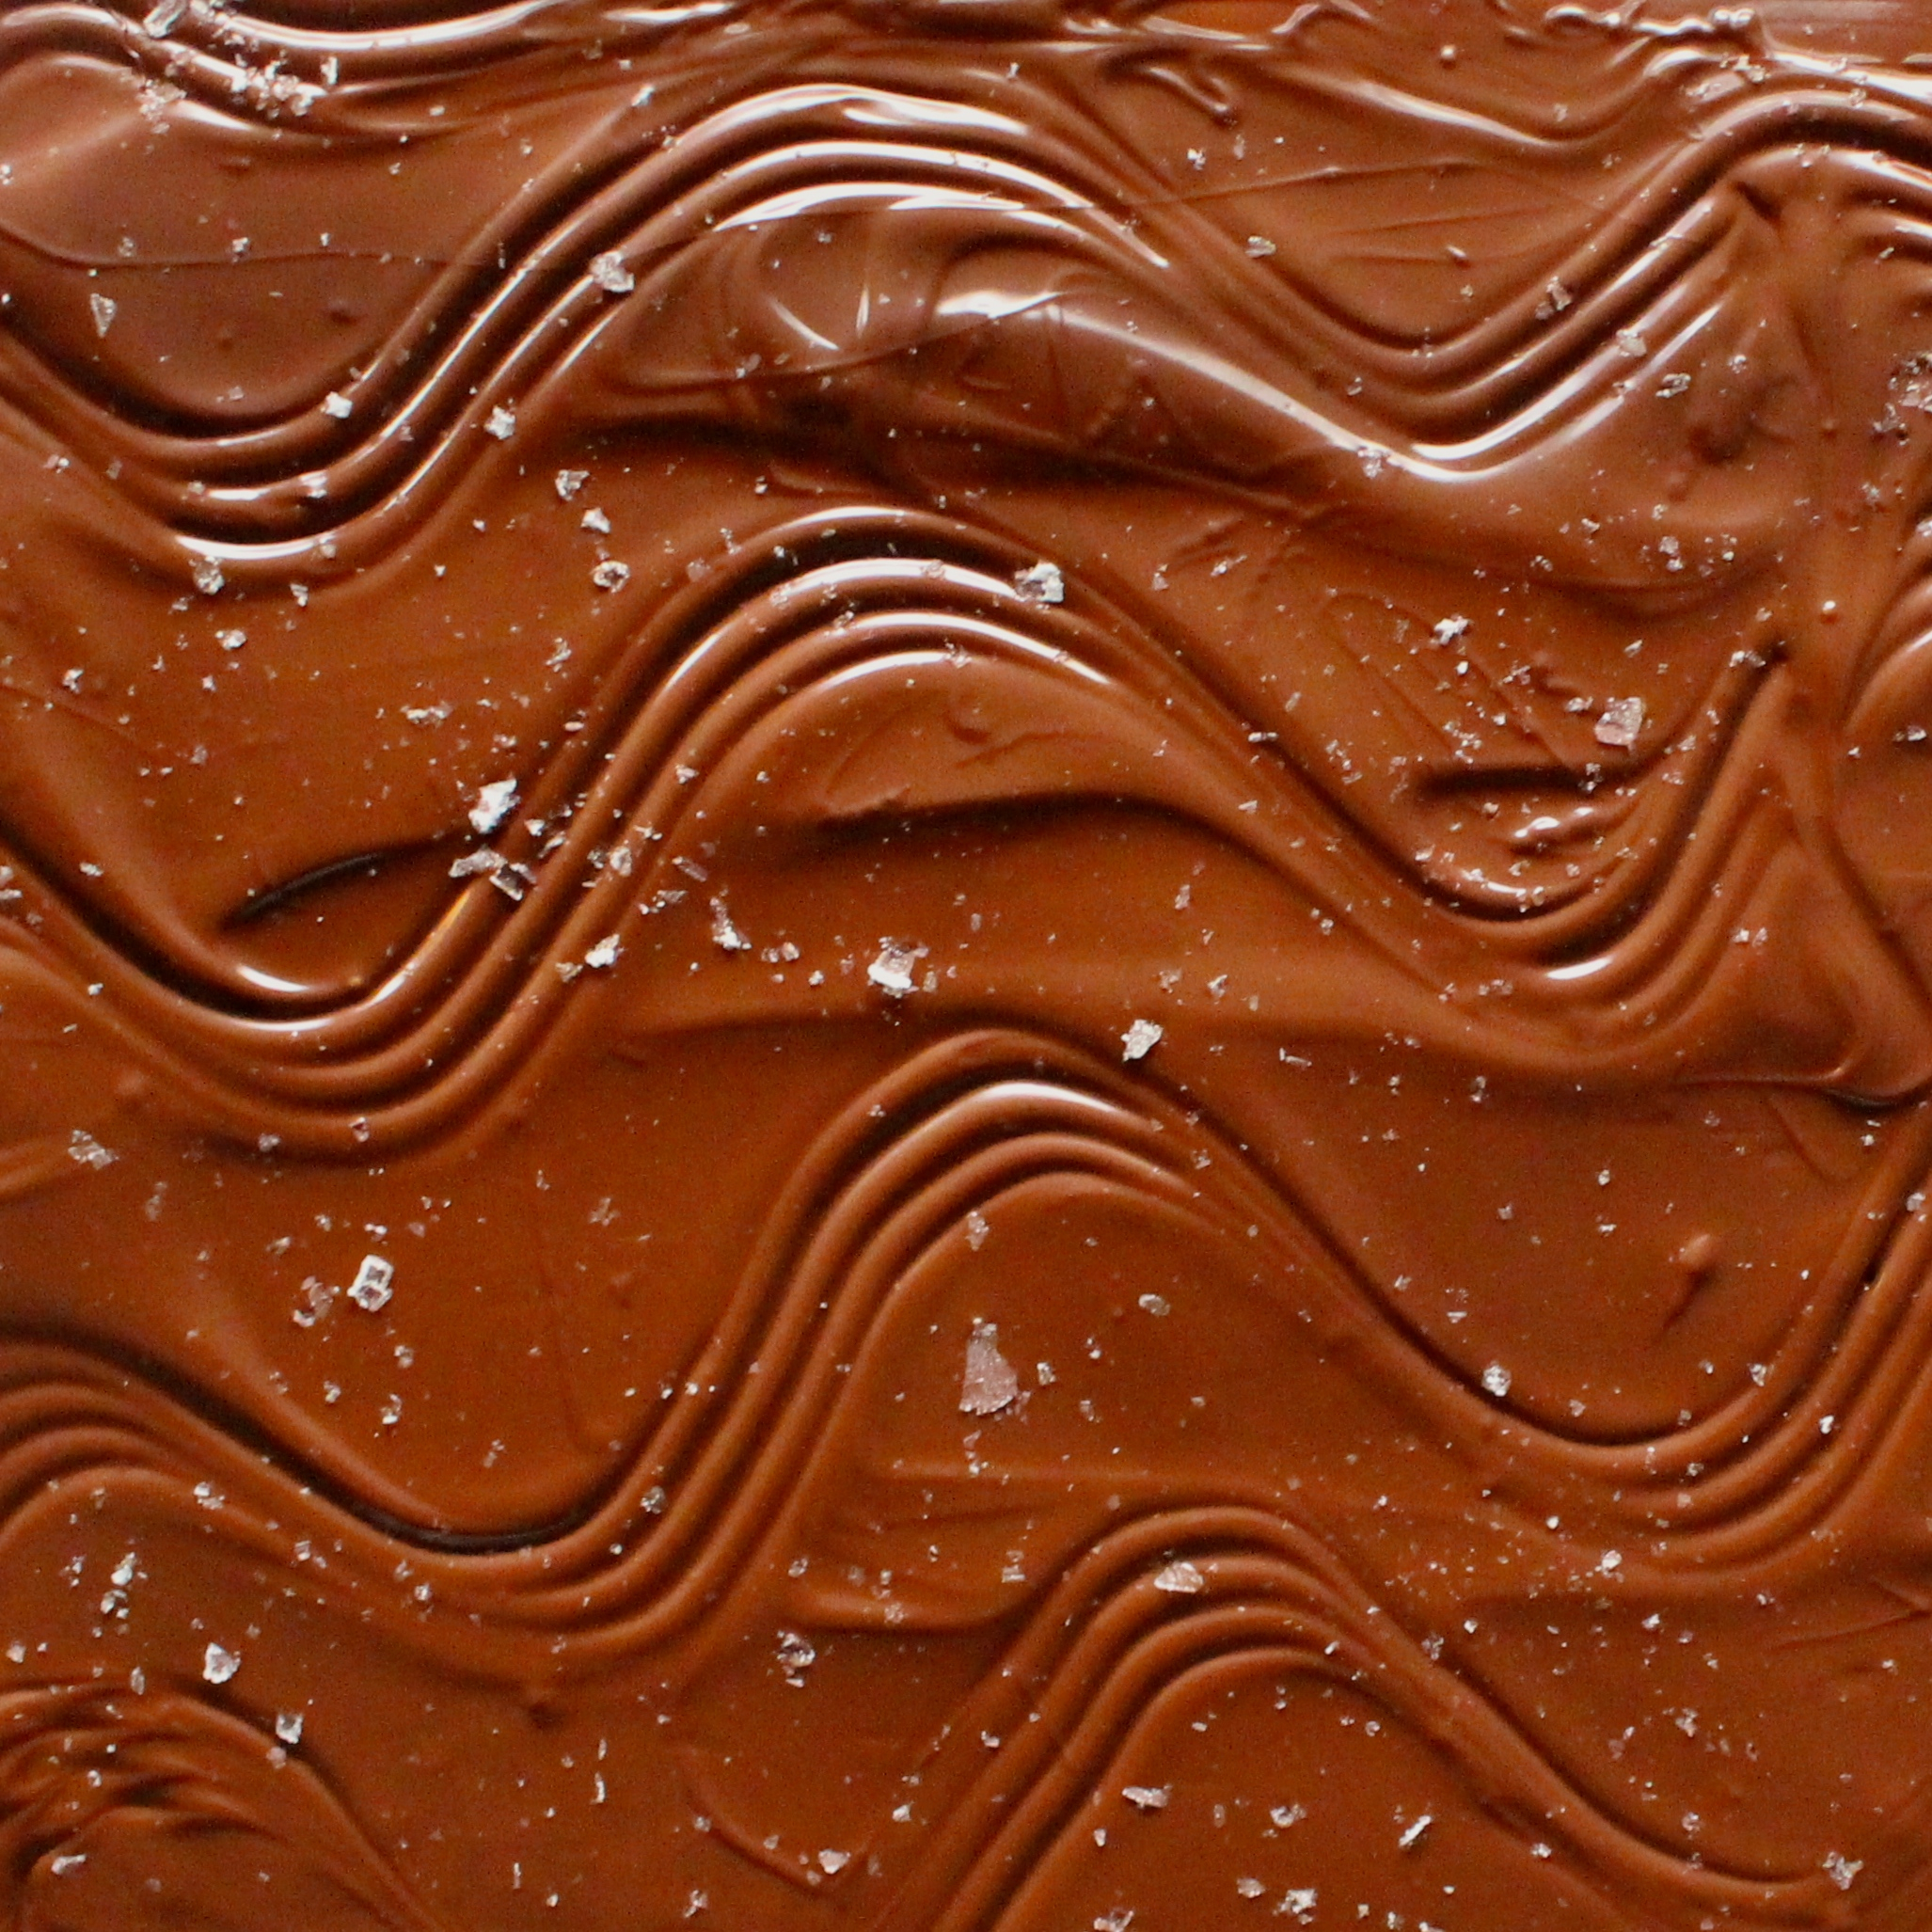 Create a wavy pattern in the chocolate, then add salt